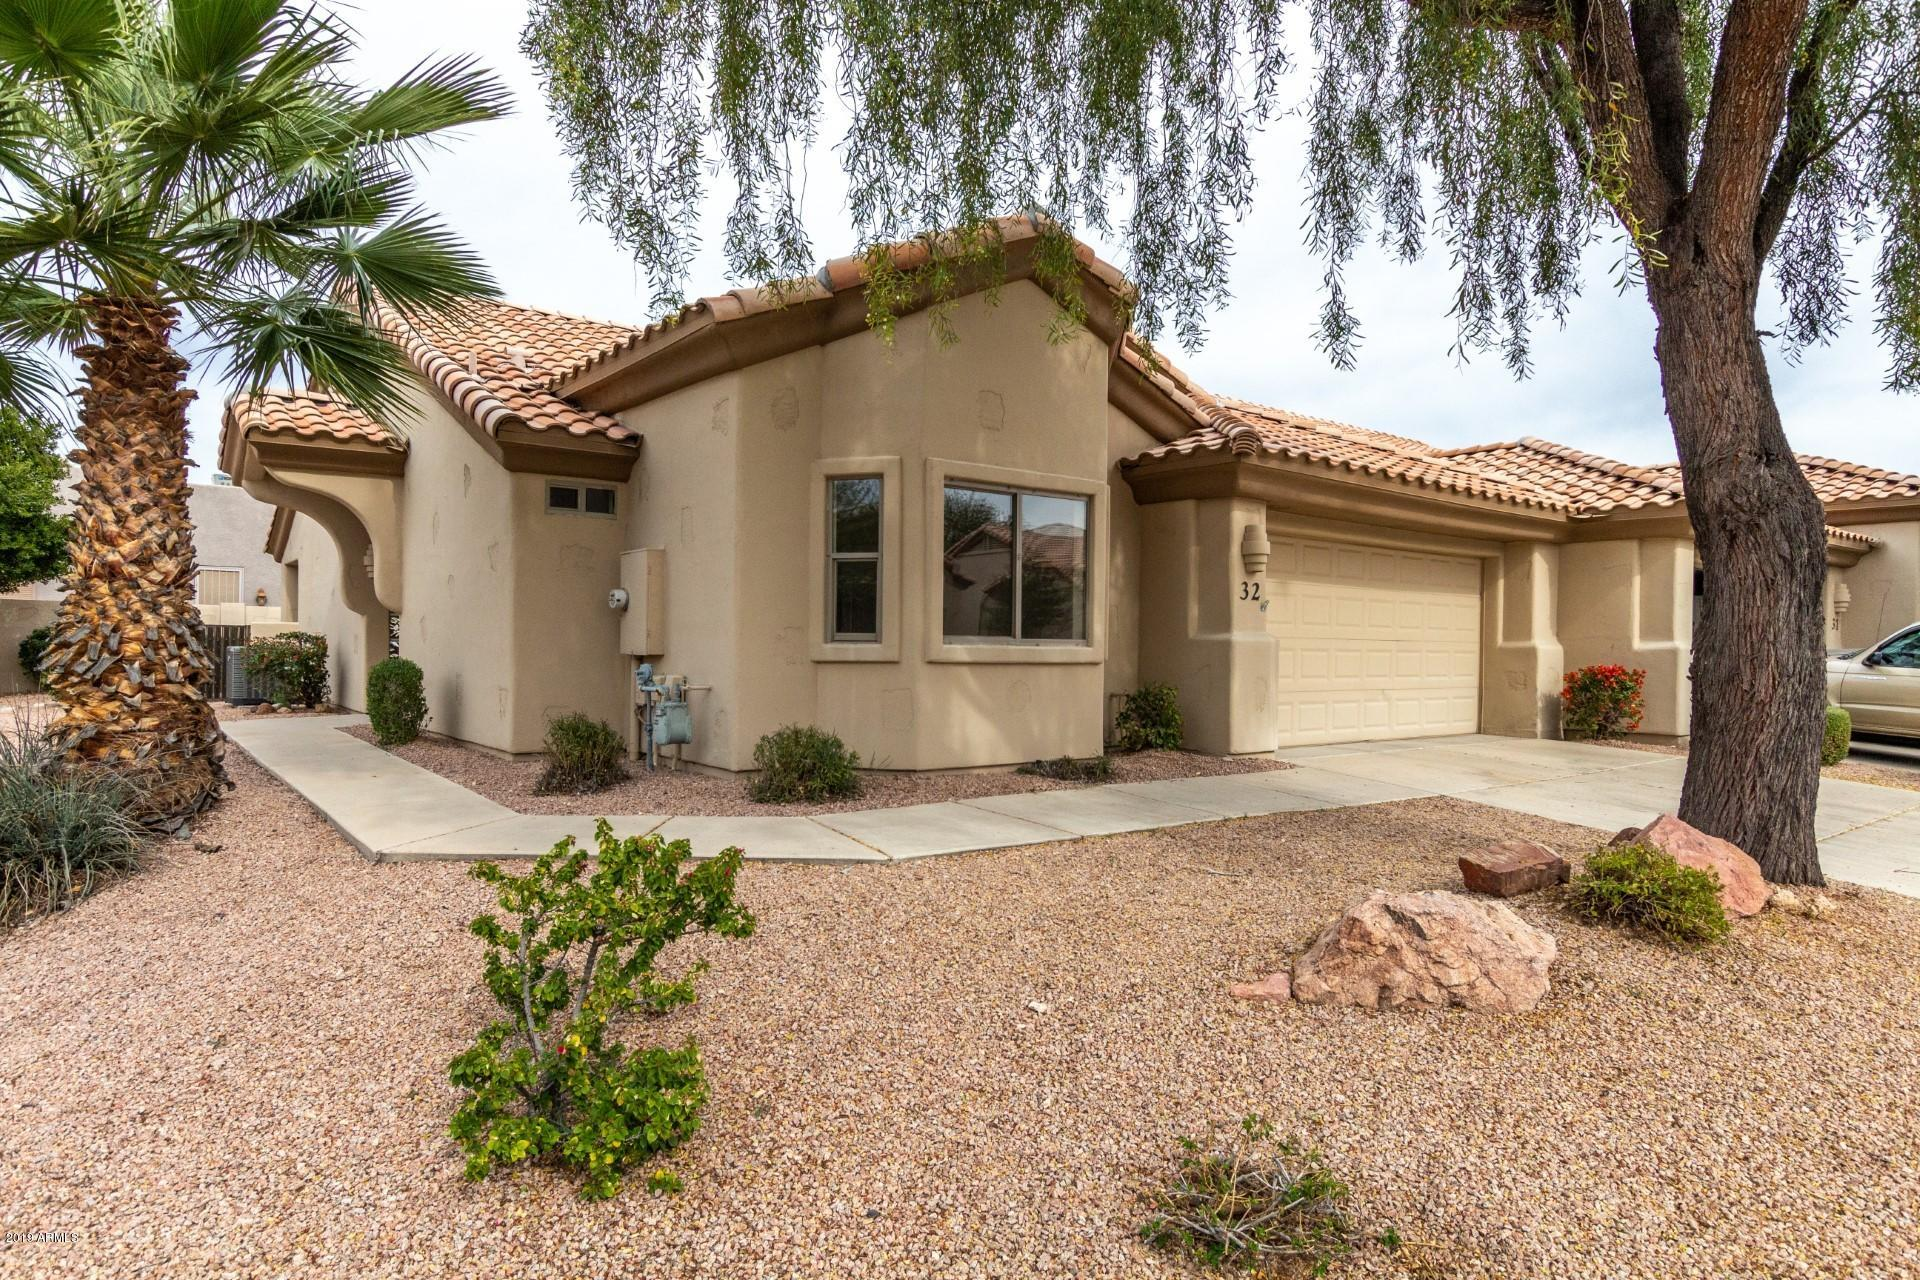 Photo of 5830 E MCKELLIPS Road #32, Mesa, AZ 85215